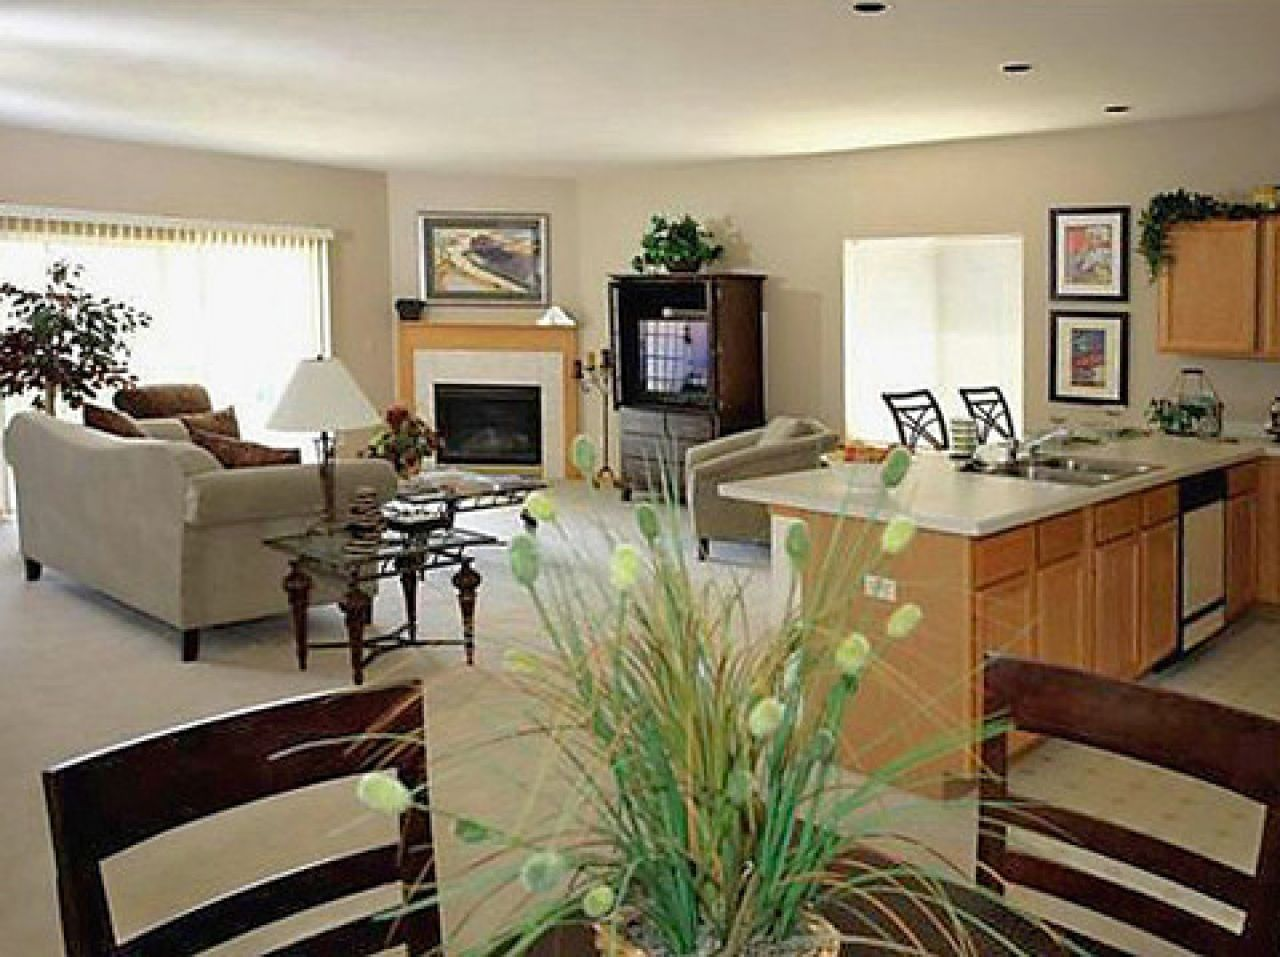 open kitchen living room designs   Wide px  1024x600   1280x720   1440x900. open kitchen living room designs   Wide px  1024x600   1280x720